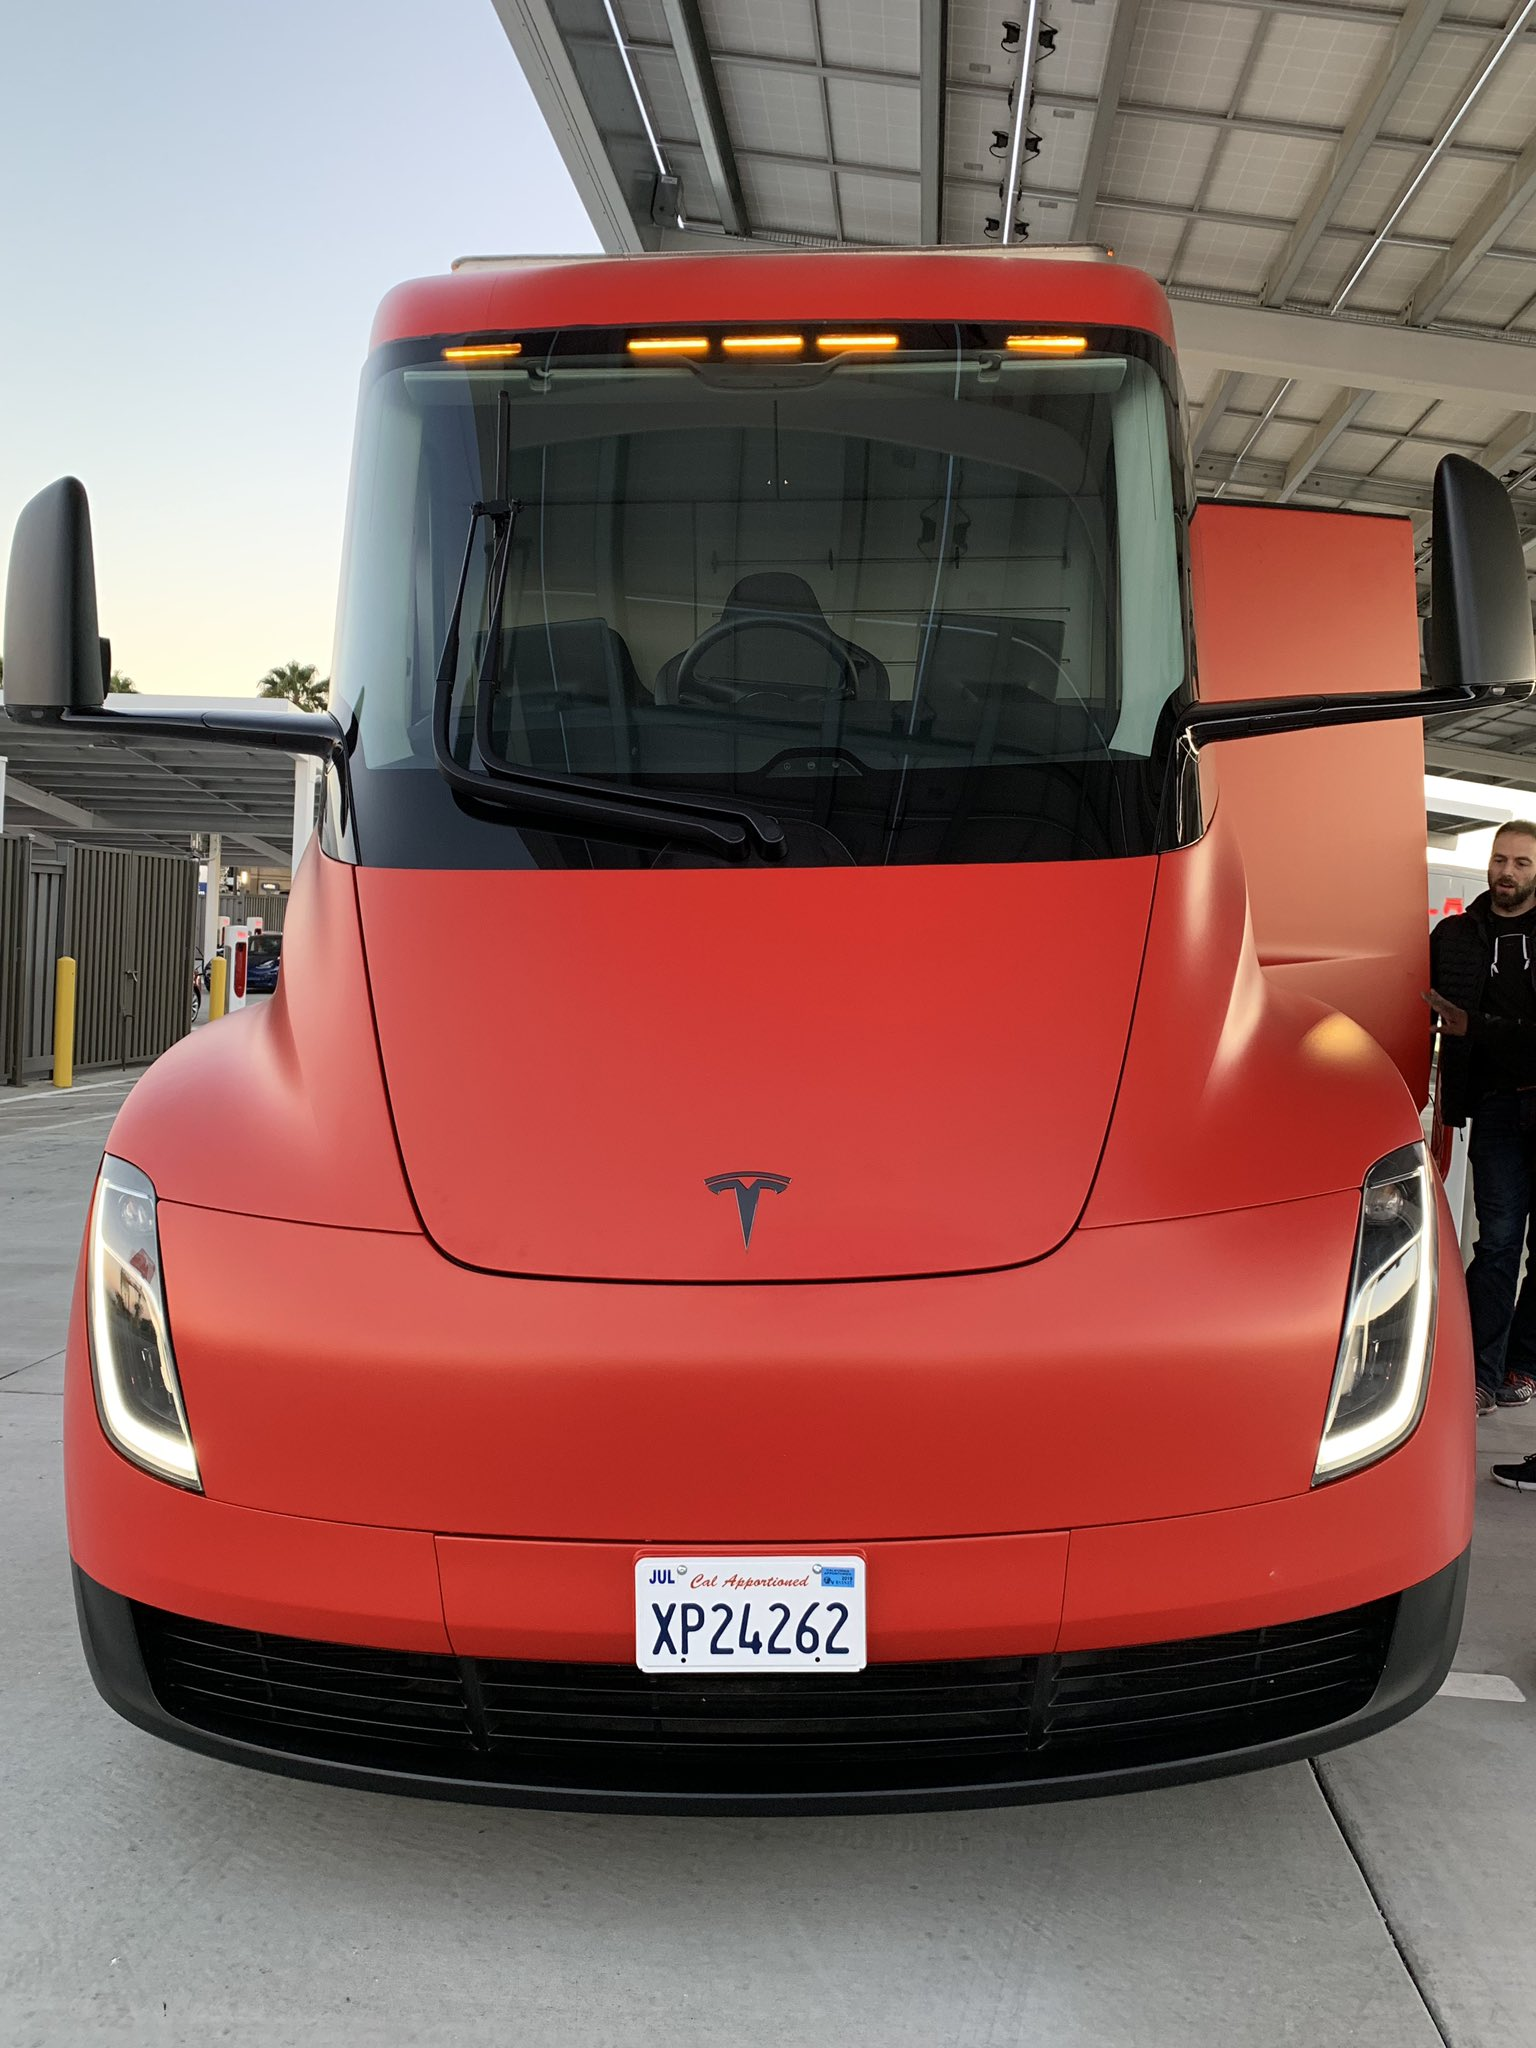 How Long Does A Tesla Take To Charge >> We present to you the 'Red Tesla Semi Truck' [HD Photos]